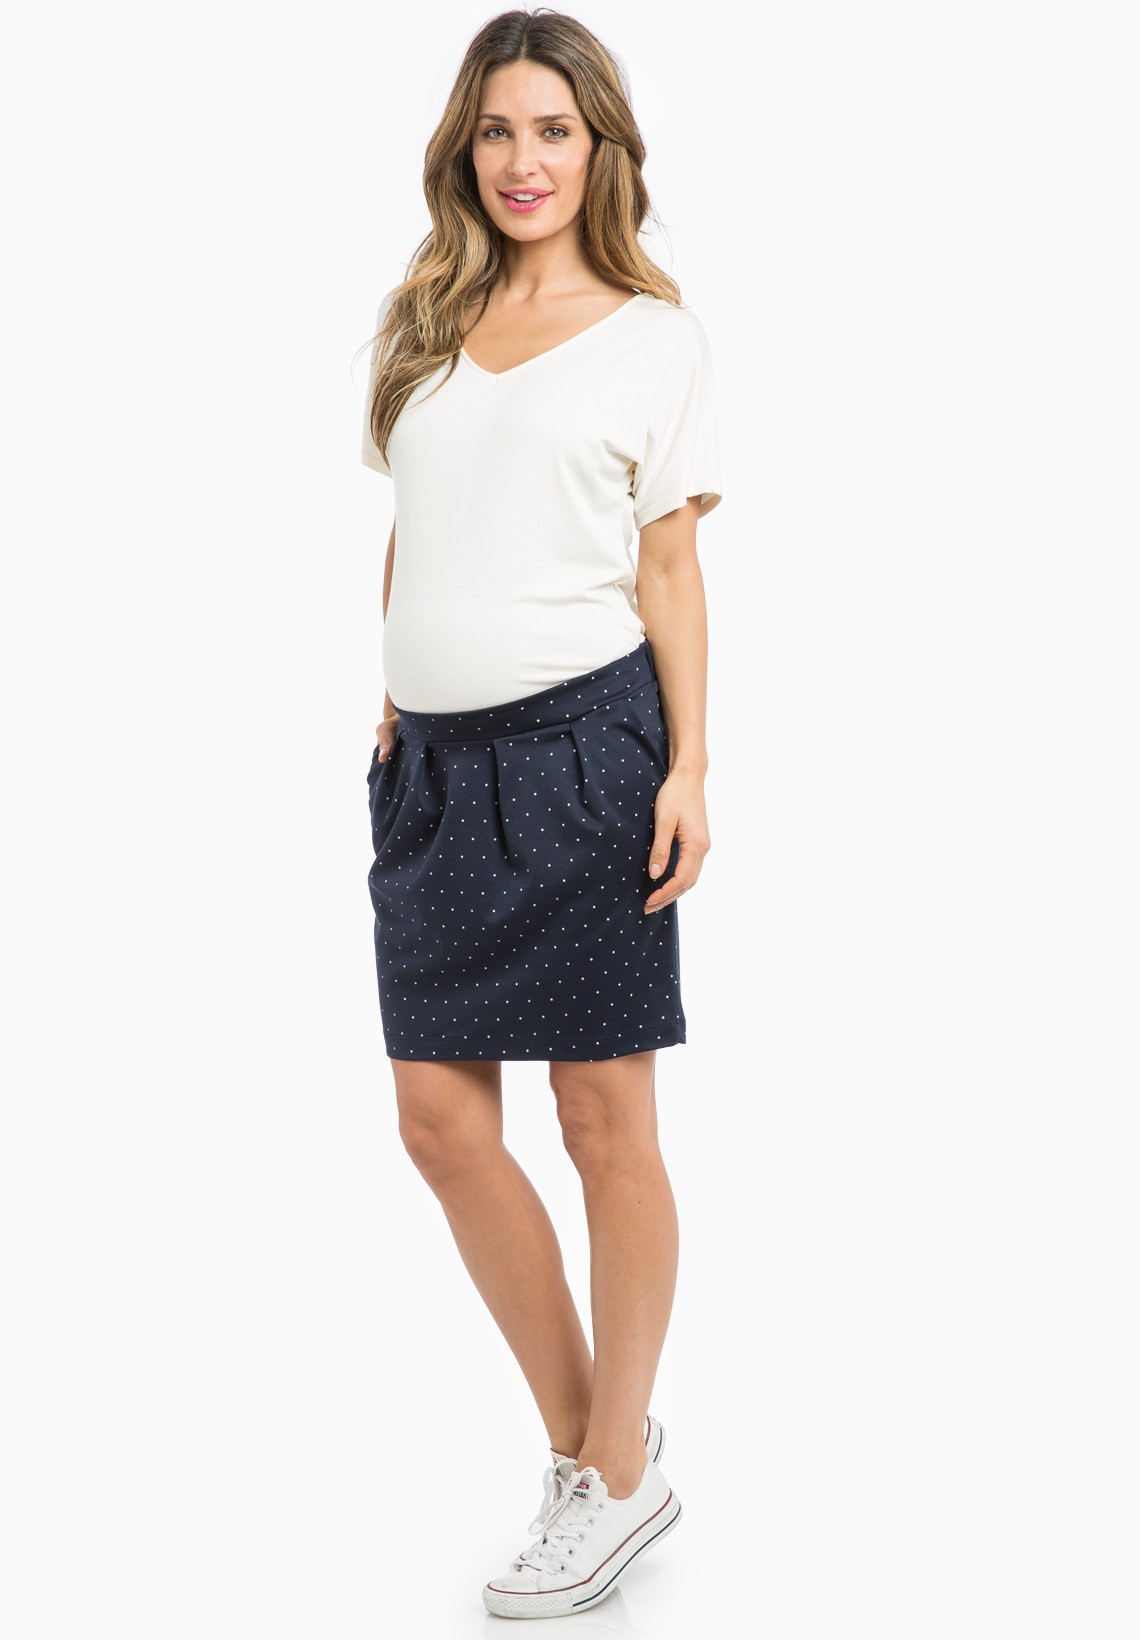 Maternity Clothing Mums-to-be don't need to scrimp on style with our Maternity clothing. From essential wardrobe basics, comfy underwear and bump-friendly jeans, we've.